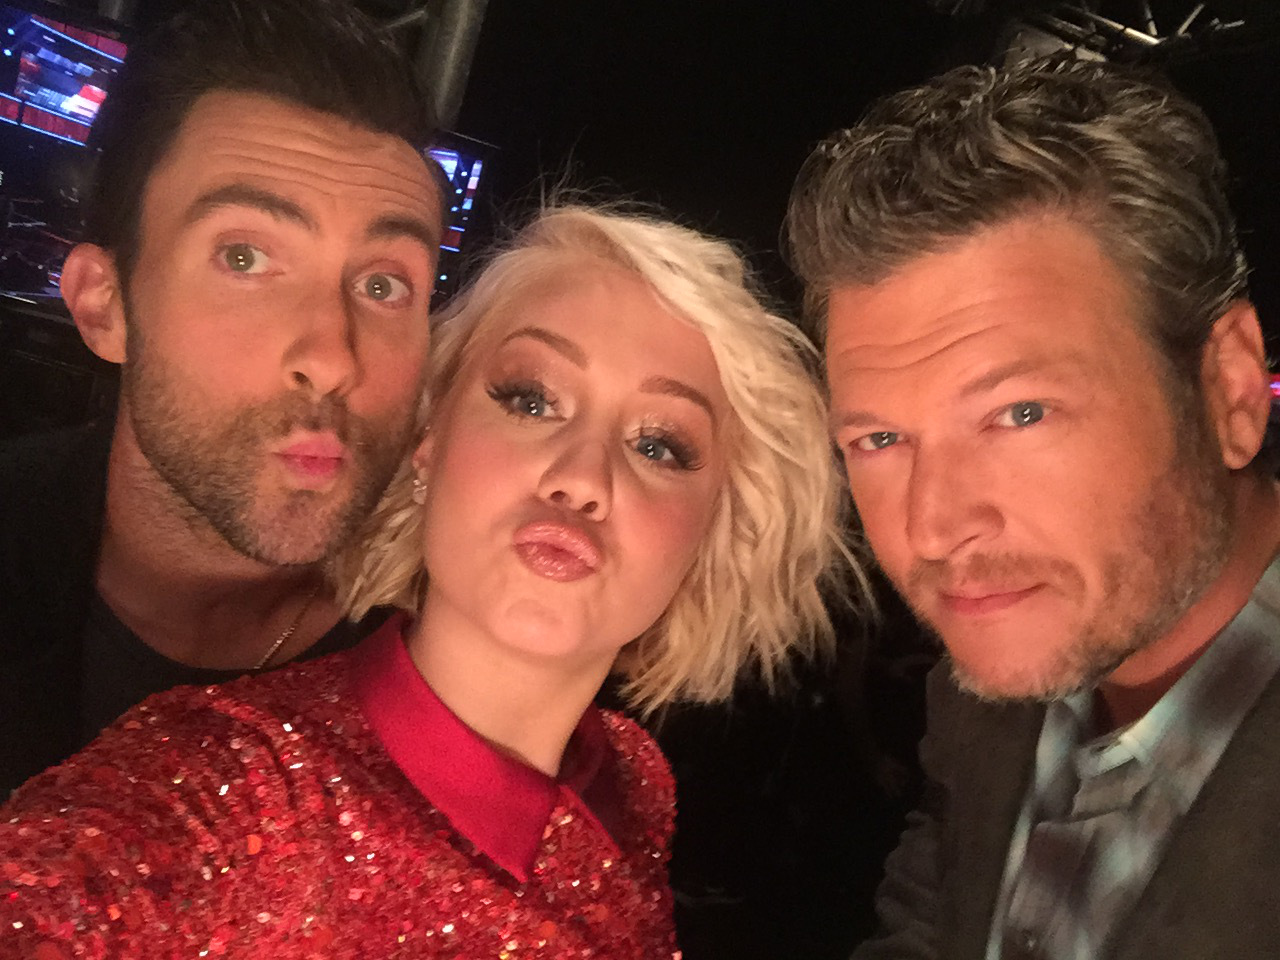 Blake Shelton, RaeLynn, and Adam Levine